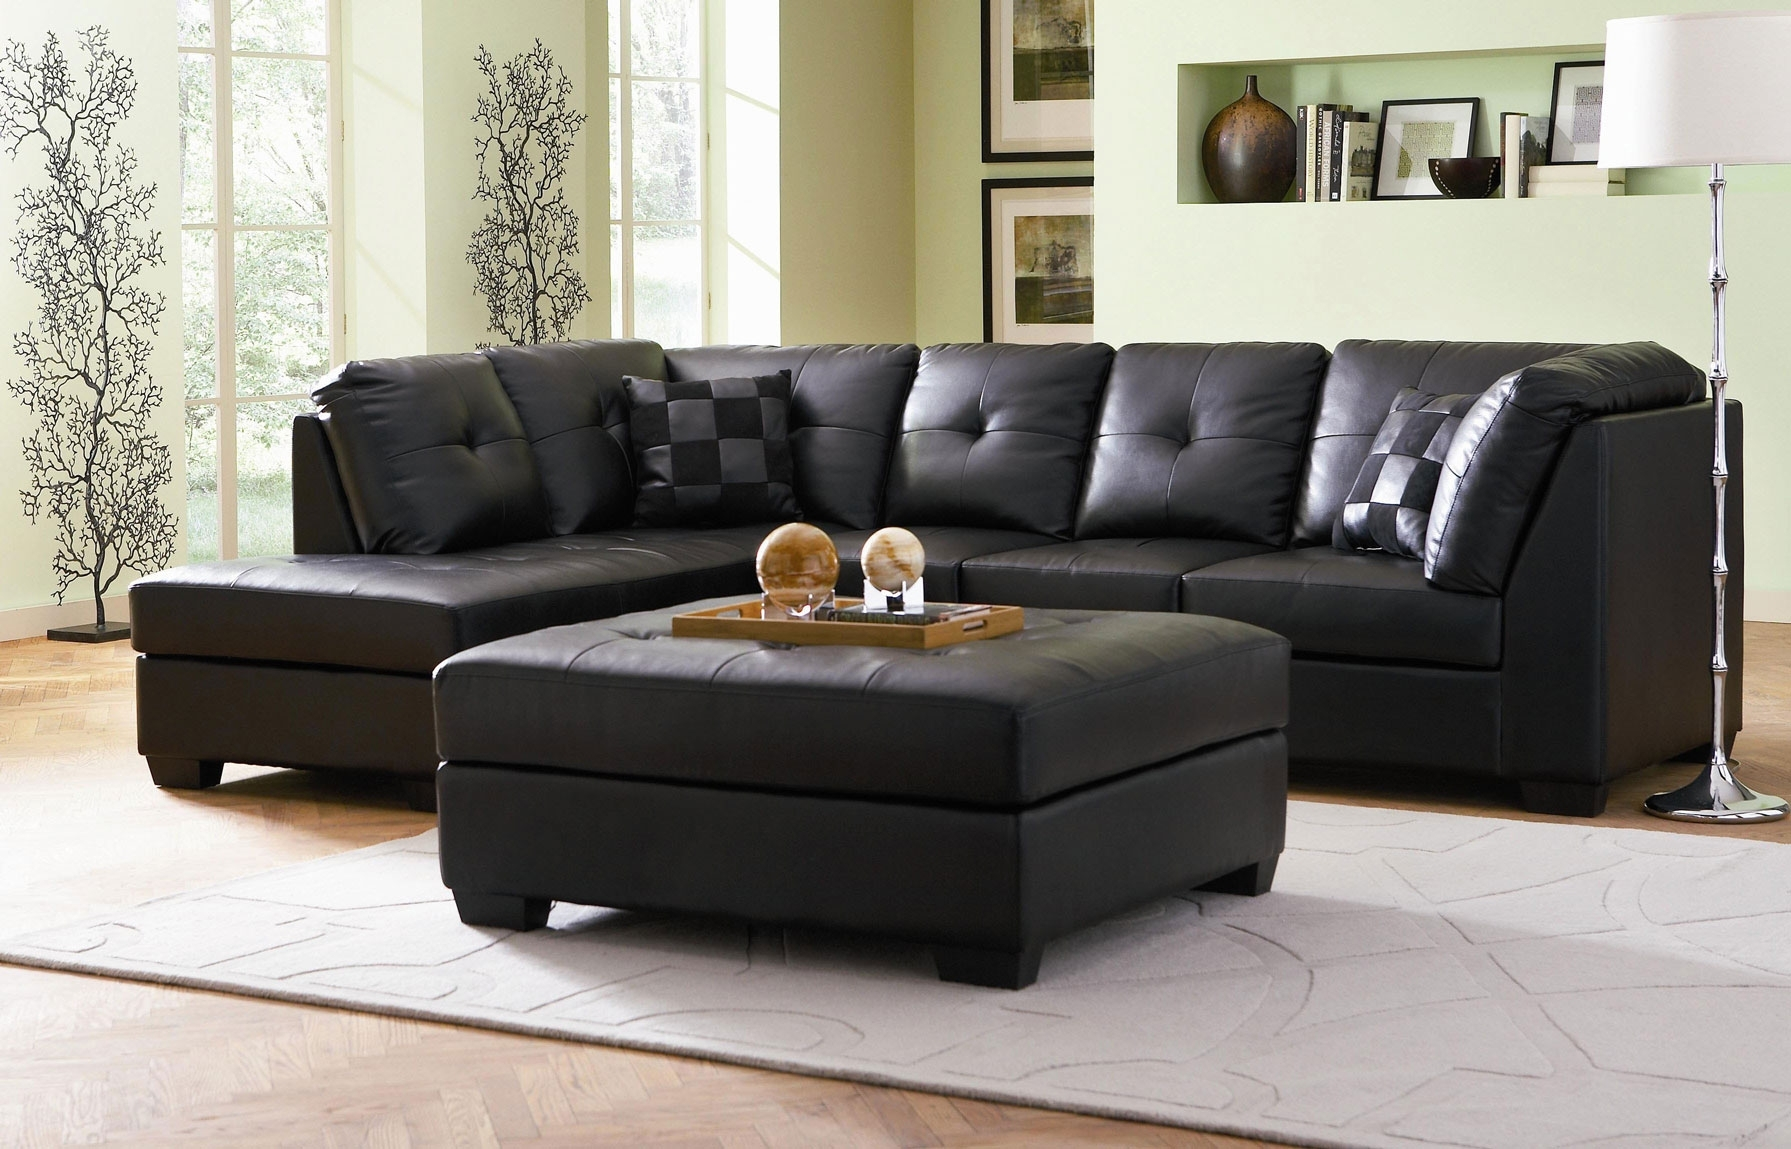 Sectional Sofa. Best Quality Sectional Sofas Jacksonville Fl regarding Jacksonville Fl Sectional Sofas (Image 8 of 10)